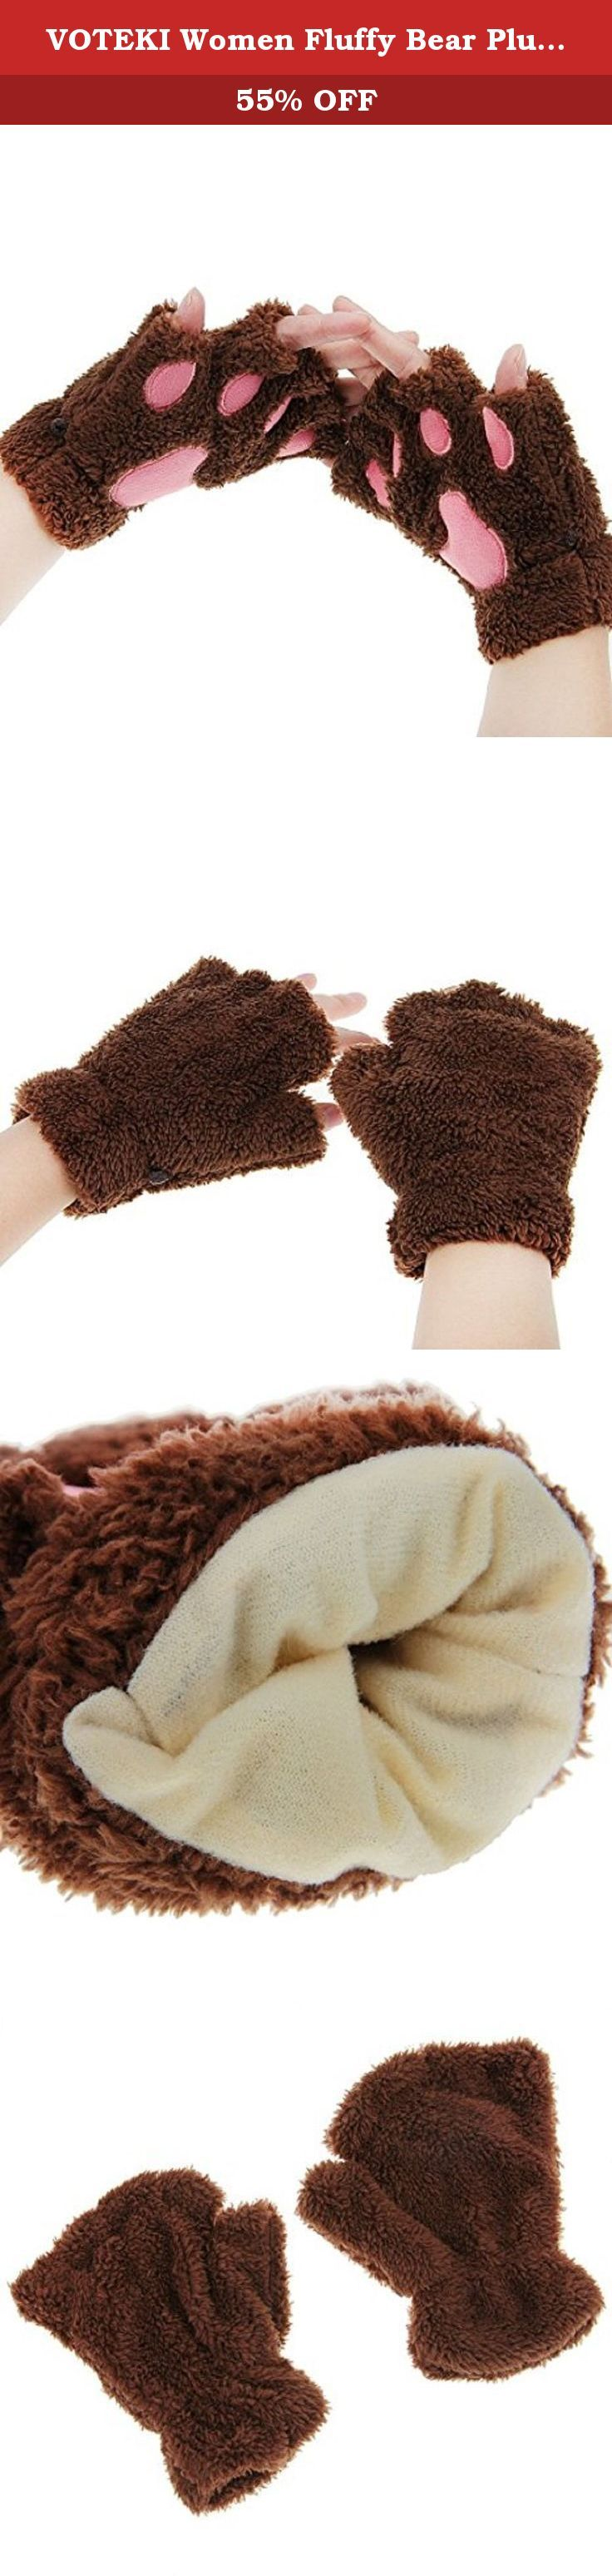 Mens novelty gloves - Voteki Women Fluffy Bear Plush Cat Paw Claw Glove Soft Winter Gloves Half Finger Cute Gloves